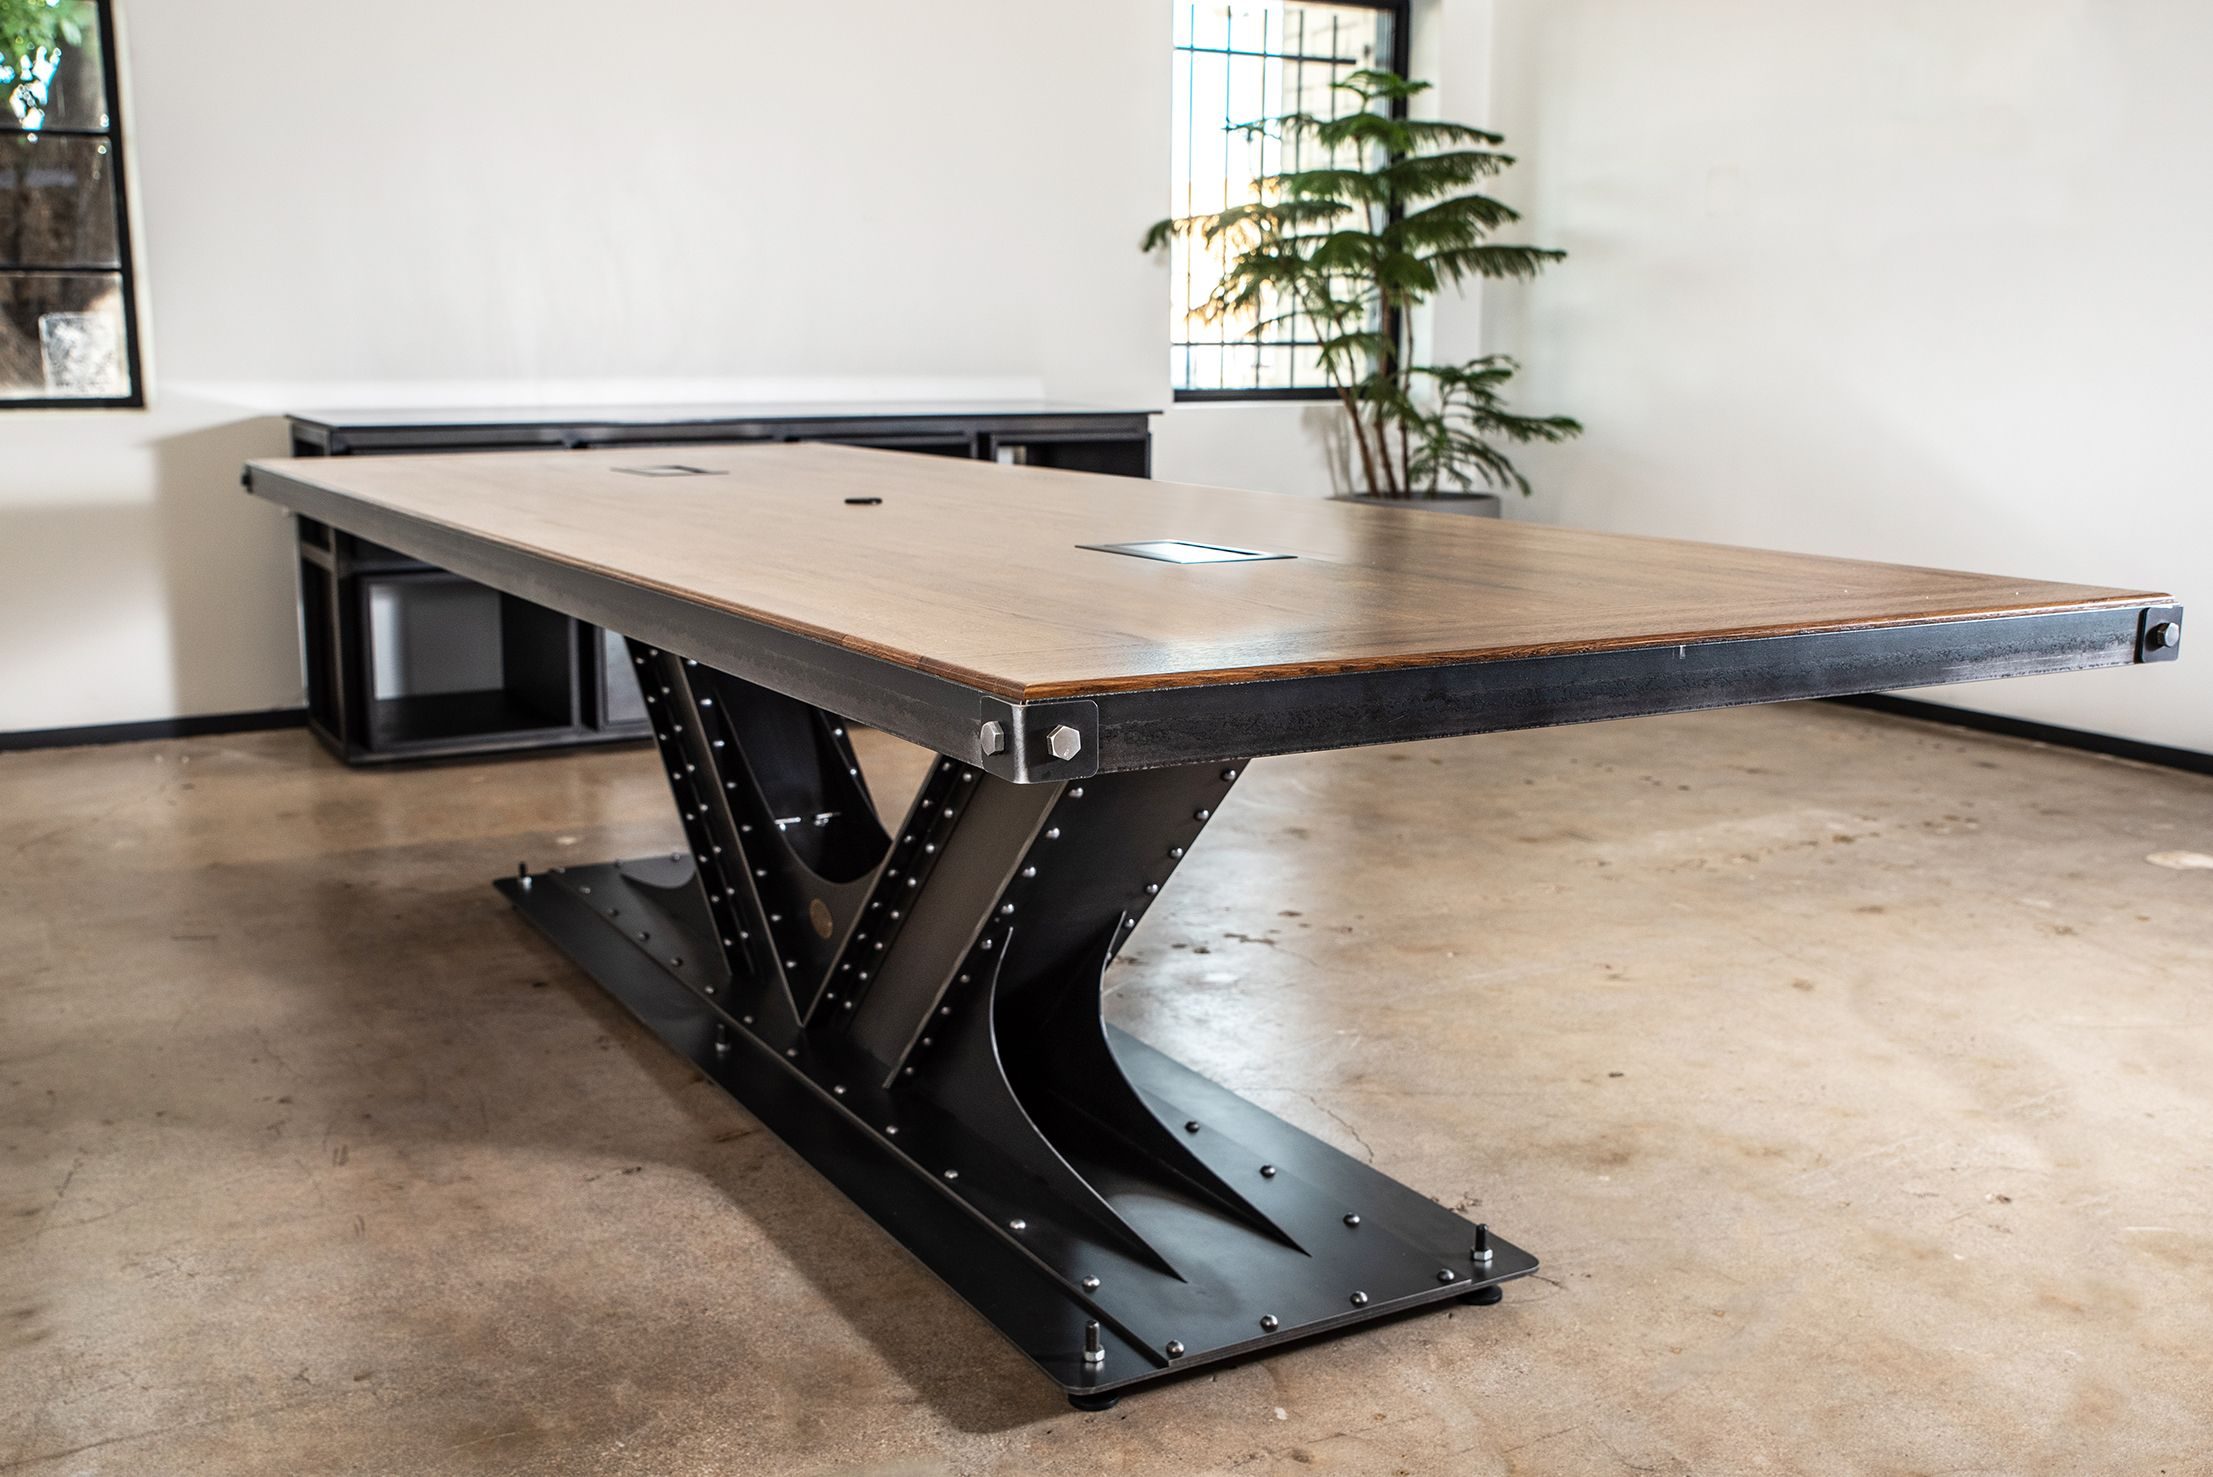 This High End Conference Room Table Will Complete The Decor Of Any Luxury Office Decor Rustic Furniture Custom Industrial Furniture Unique Furniture Pieces